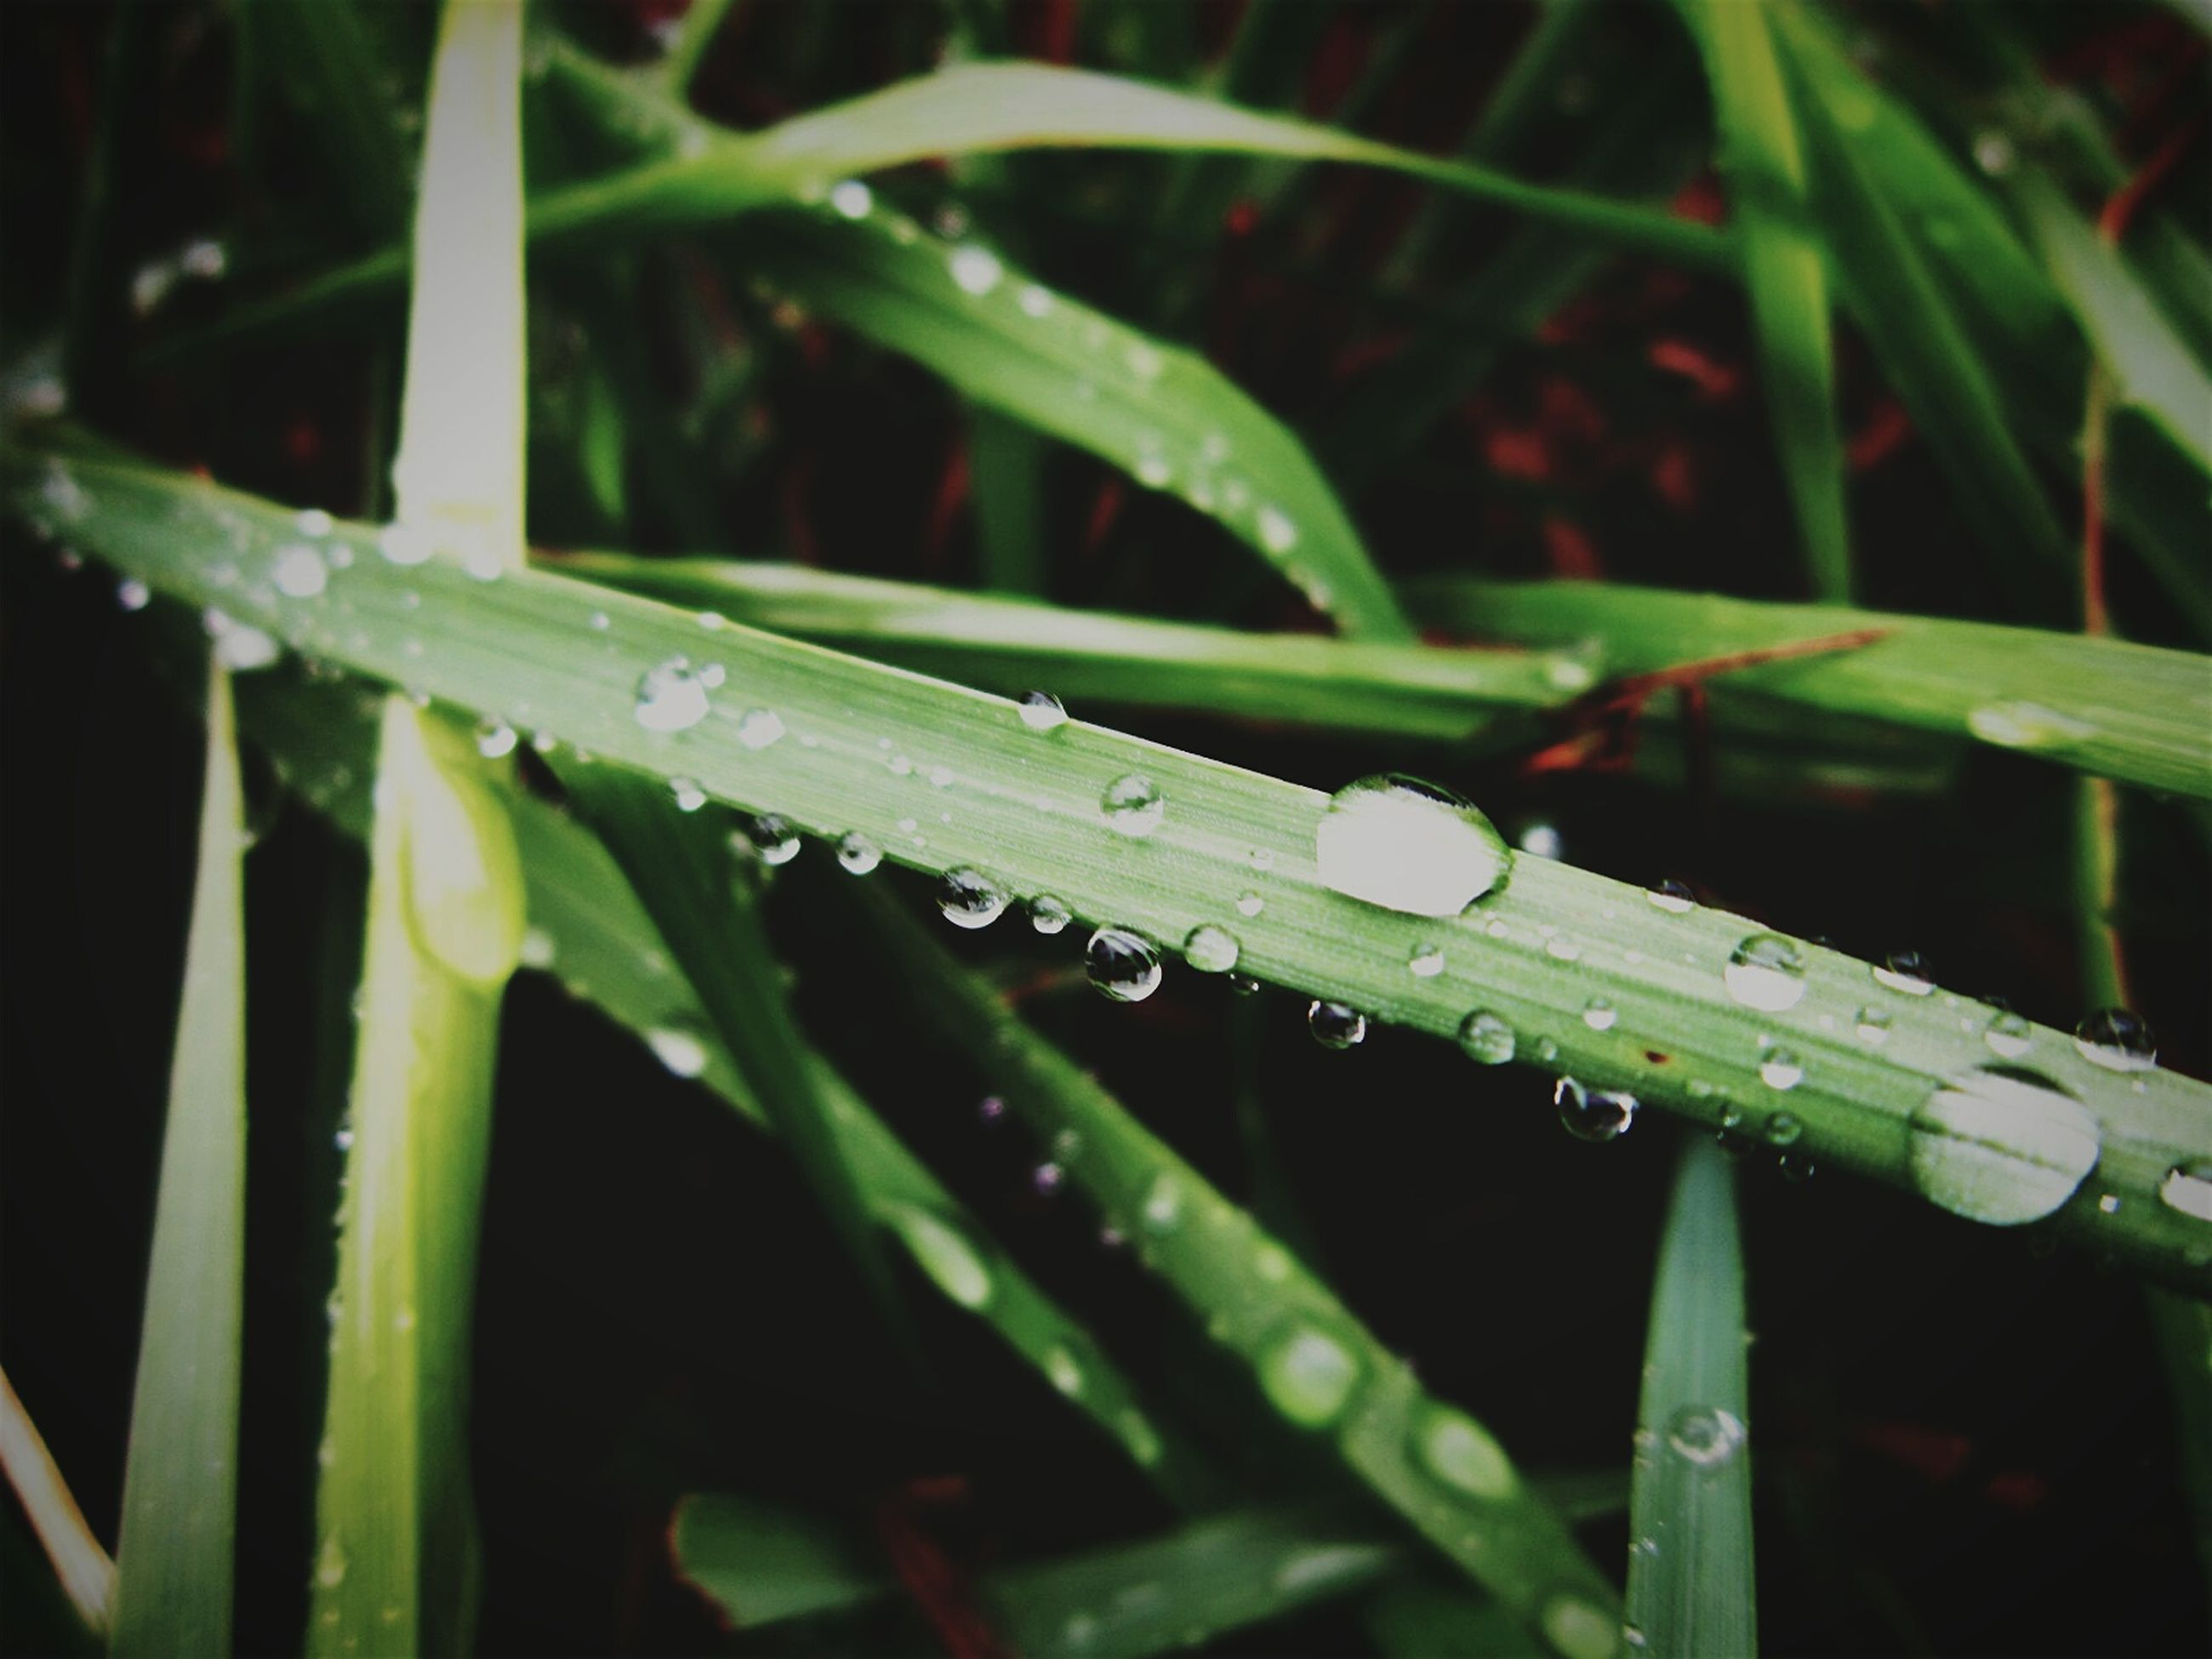 drop, green color, water, wet, growth, grass, close-up, nature, leaf, blade of grass, plant, focus on foreground, beauty in nature, freshness, selective focus, dew, field, outdoors, day, fragility